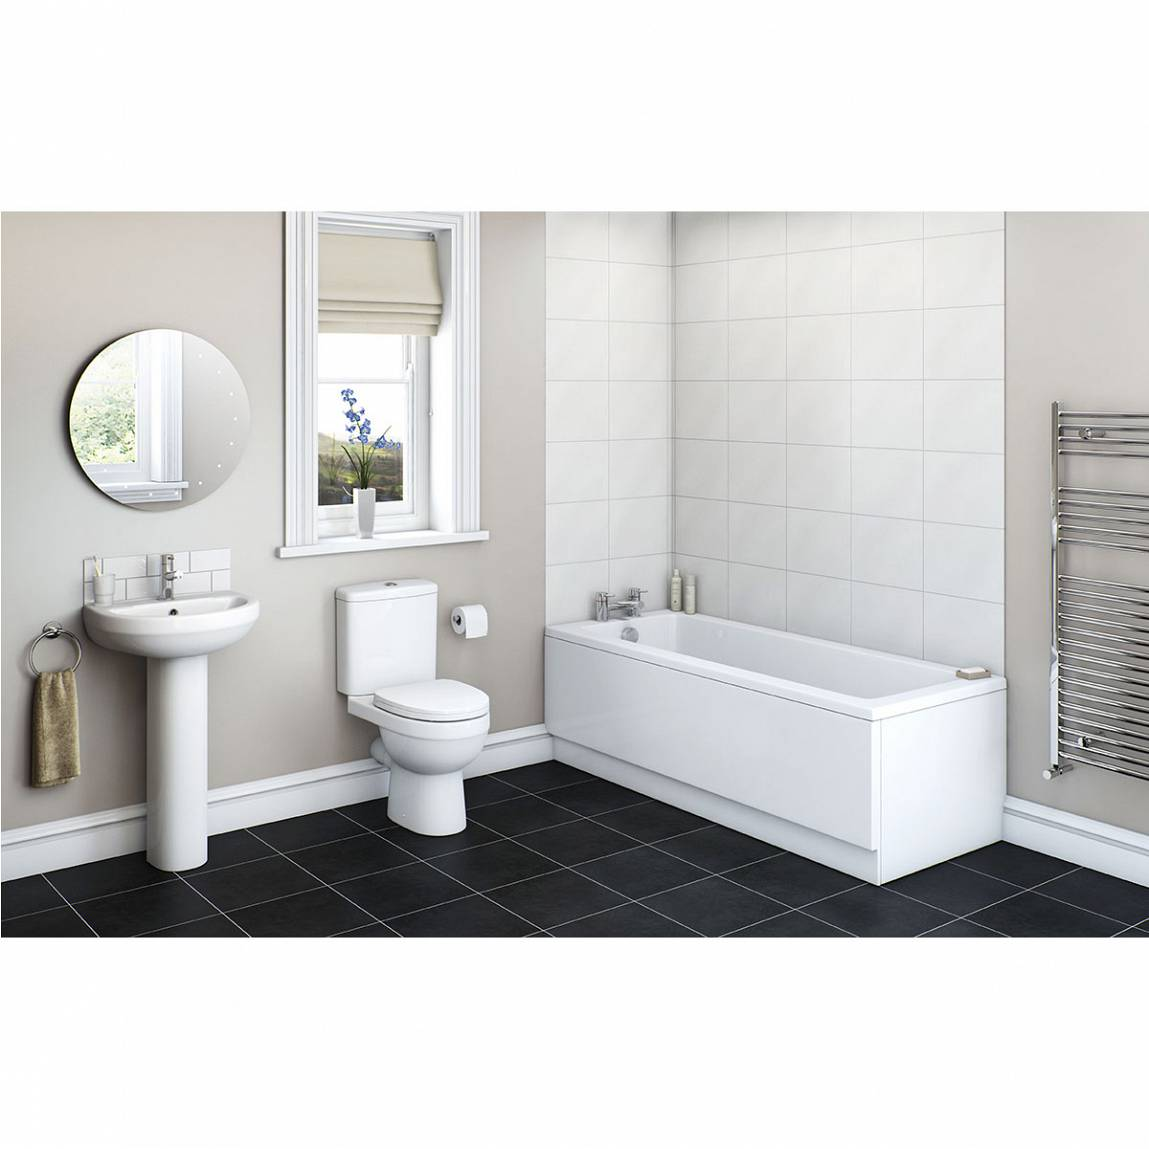 Image of Energy Bathroom Set with Kensington 1800 x 800 Bath Suite